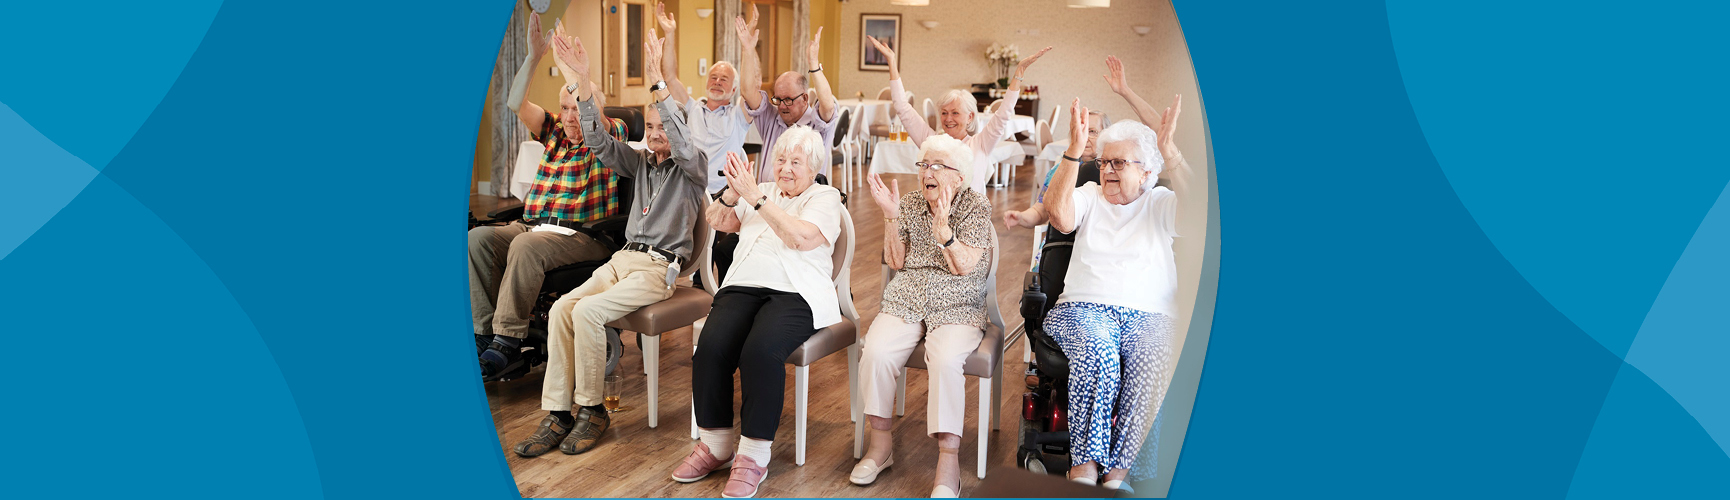 Group of older adults sitting in chairs with arms raised